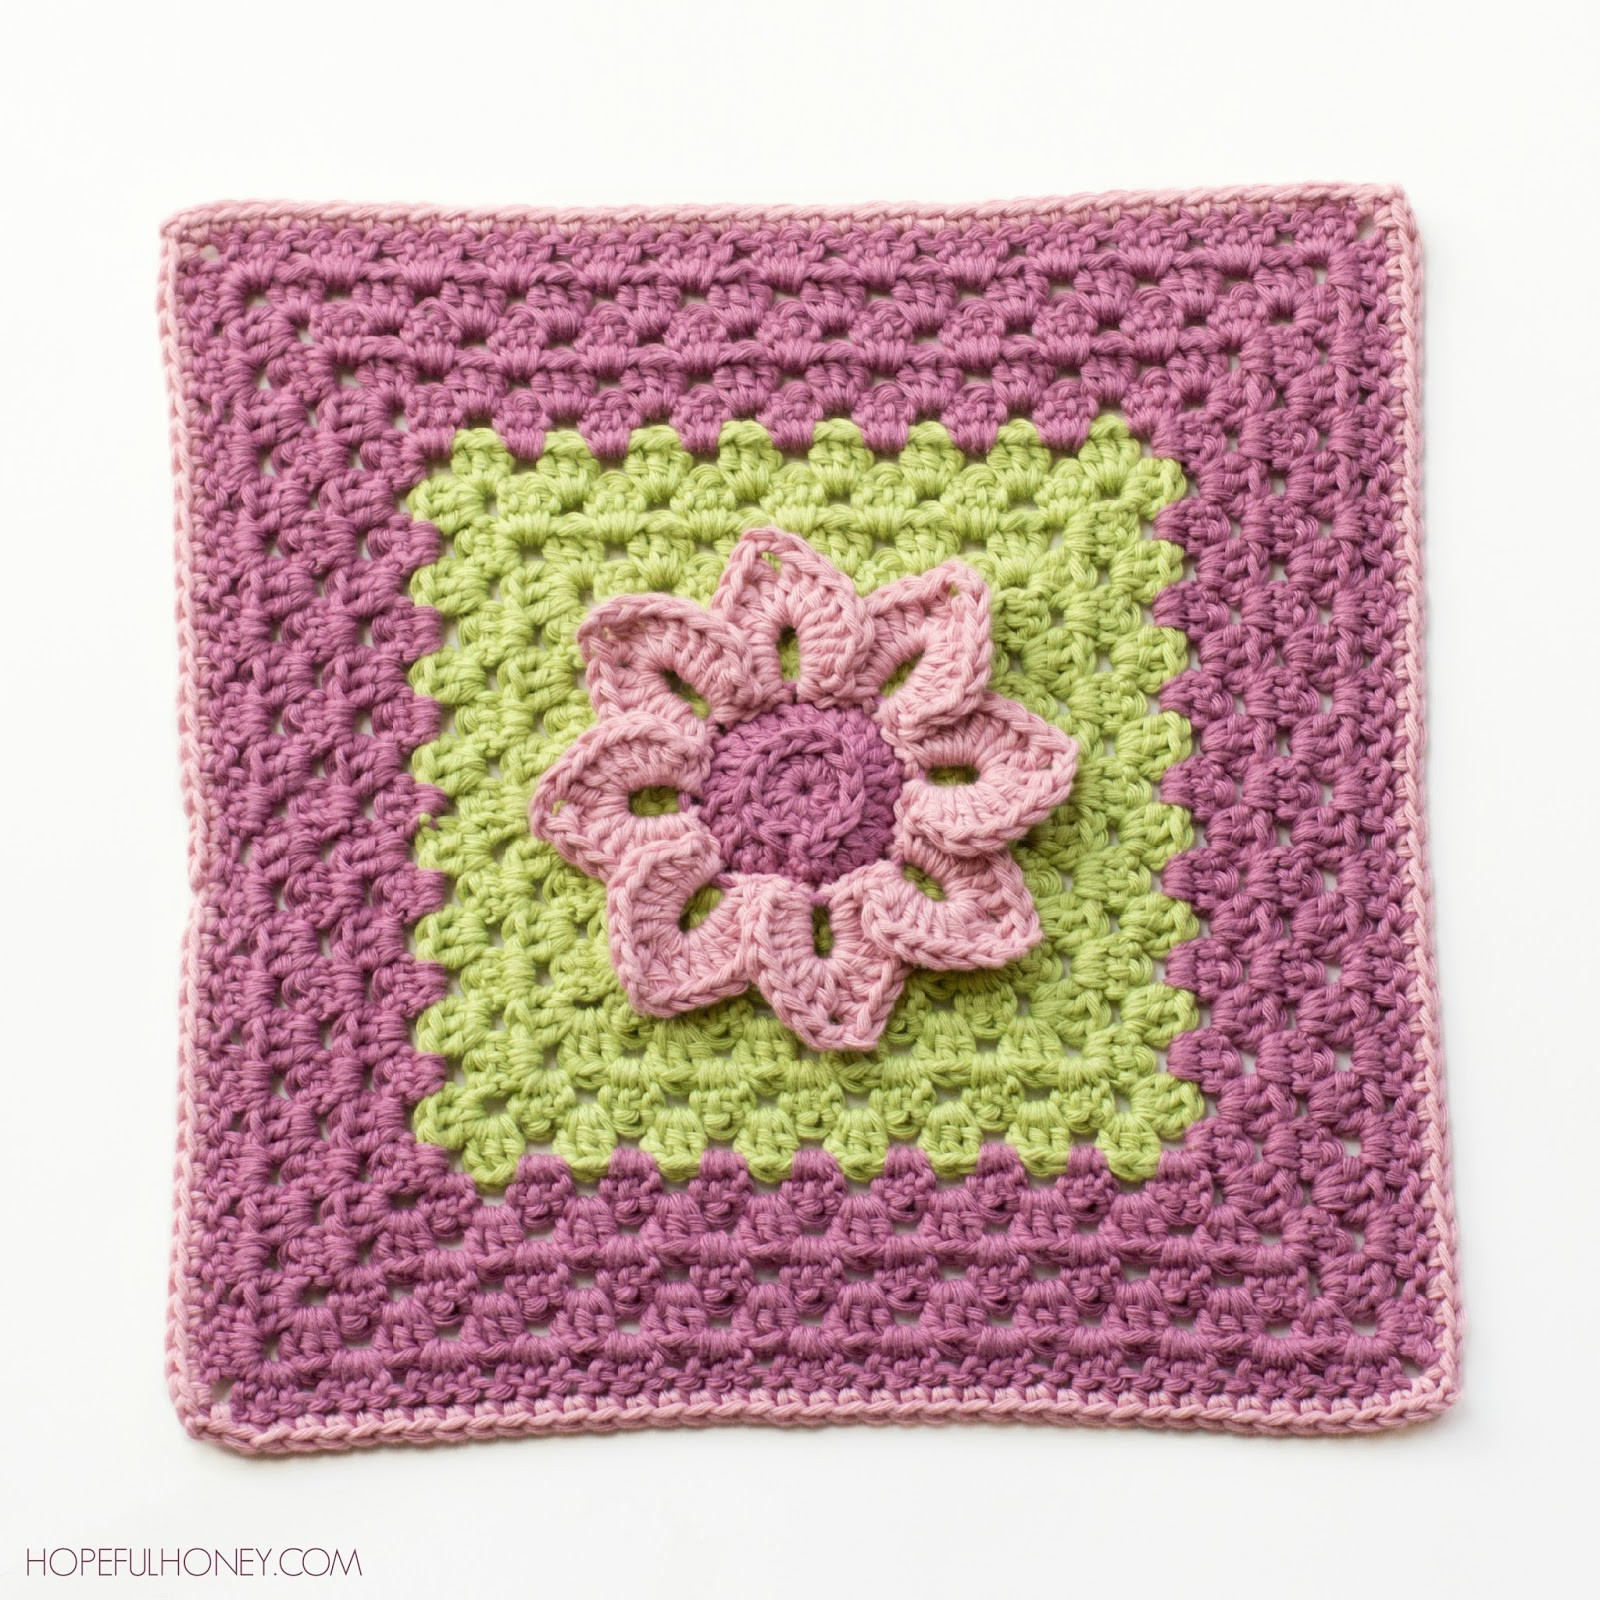 Afghan Square Crochet Patterns Beautiful Water Lily Afghan Square Interweave Of Amazing 50 Pics Afghan Square Crochet Patterns